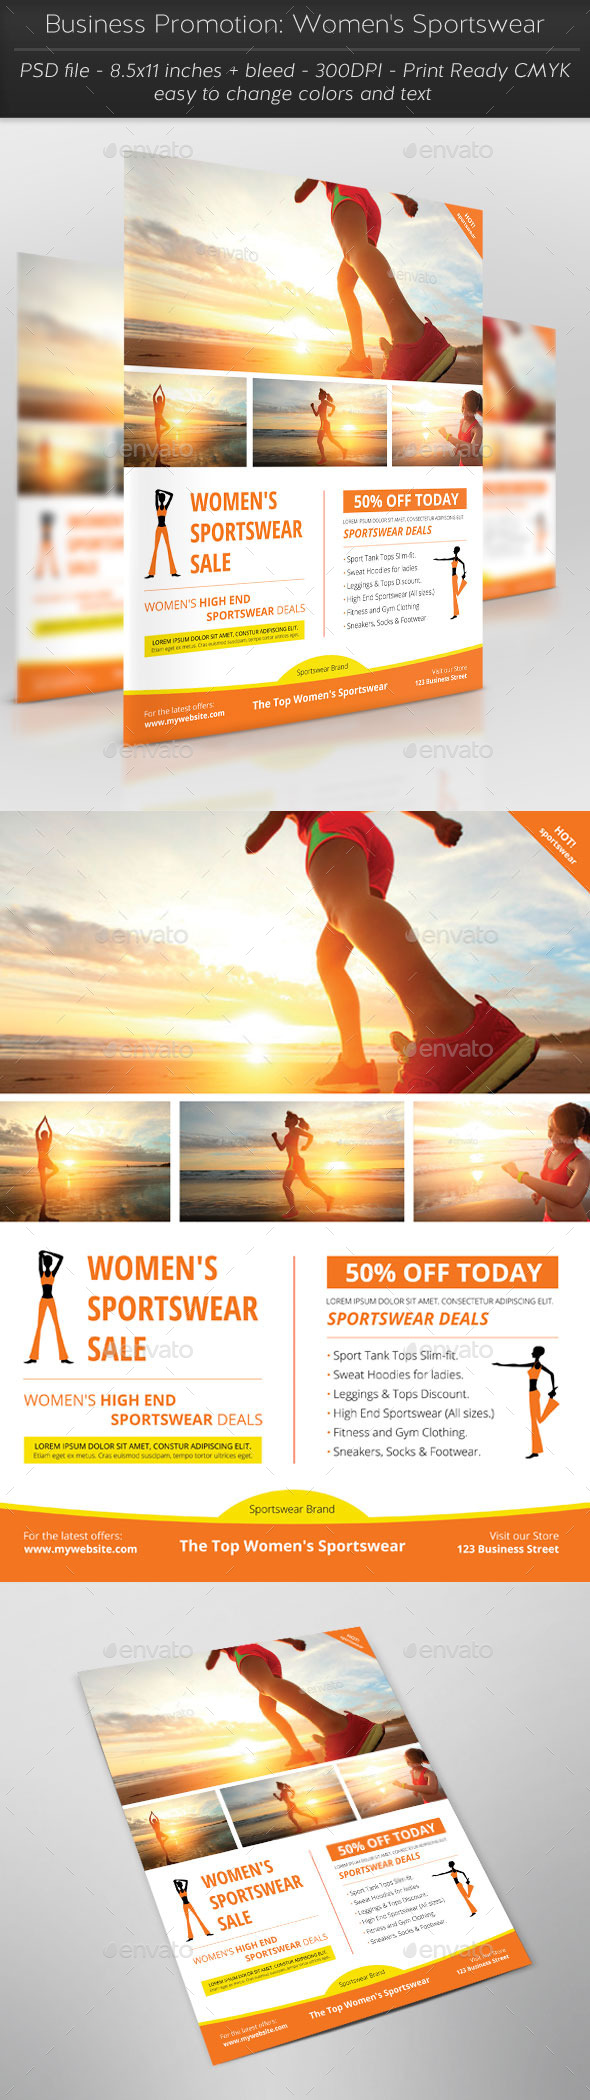 GraphicRiver Business Promotion Women s Sportswear 11802136